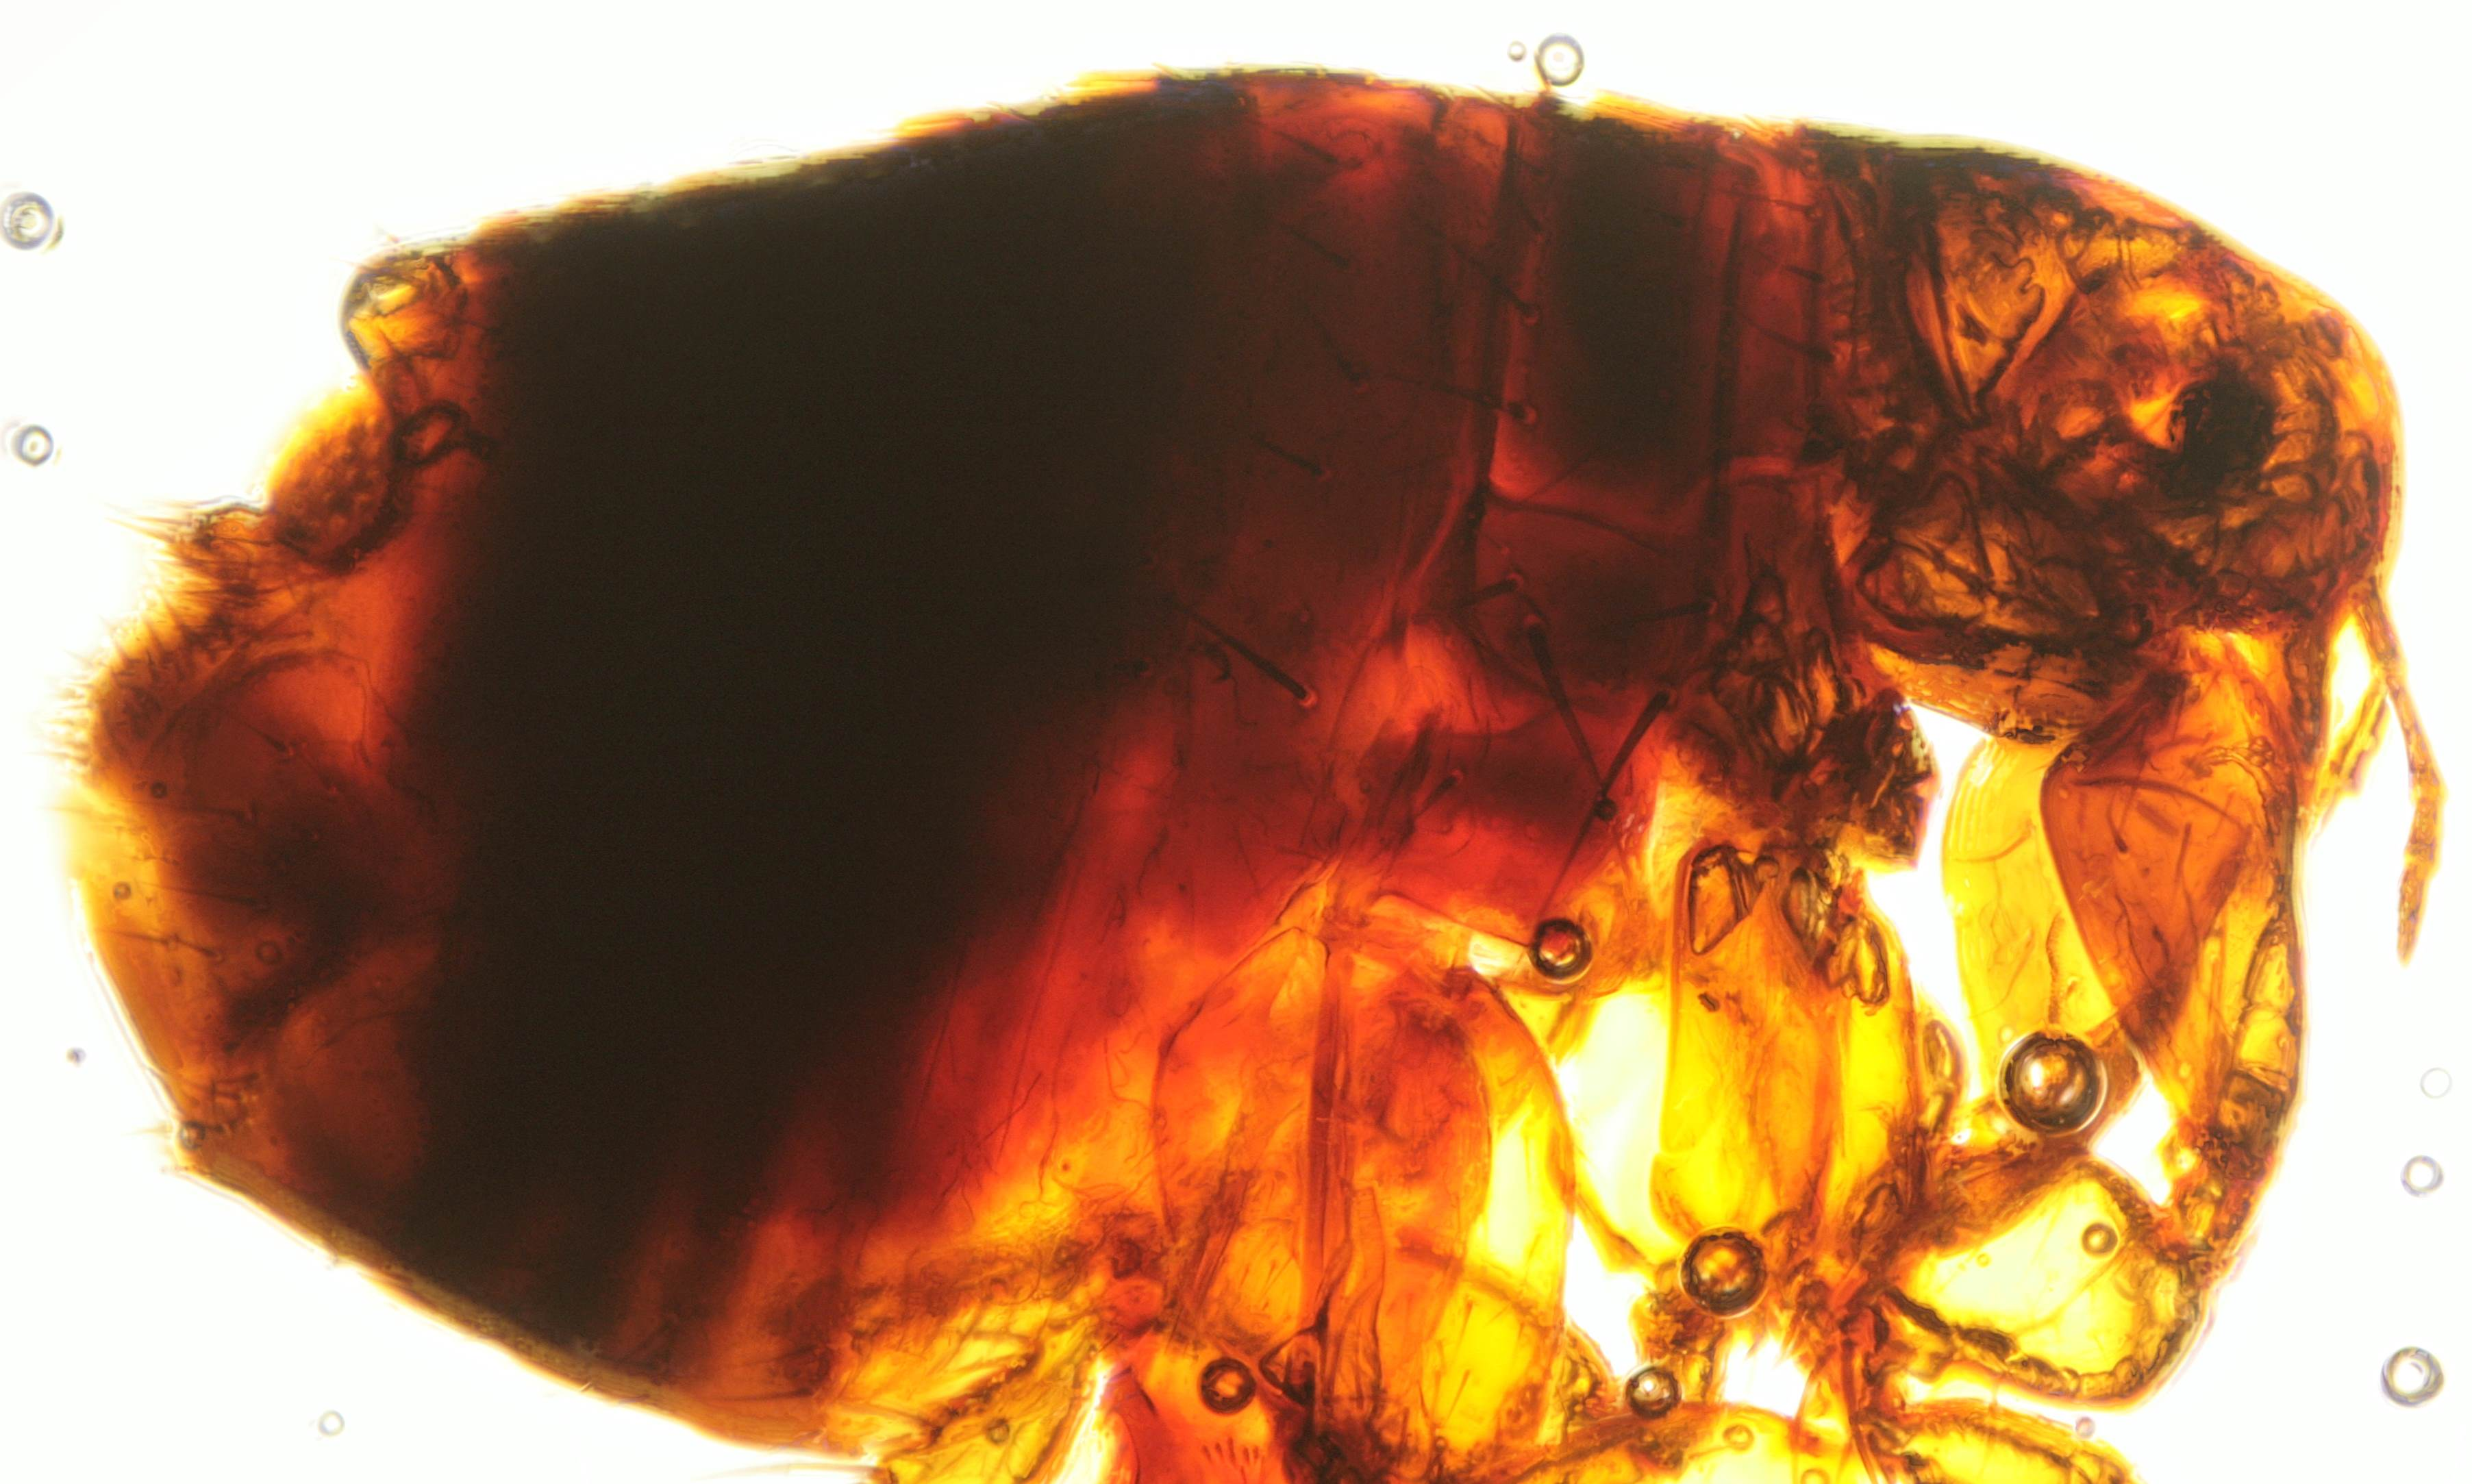 Final composite image of flea